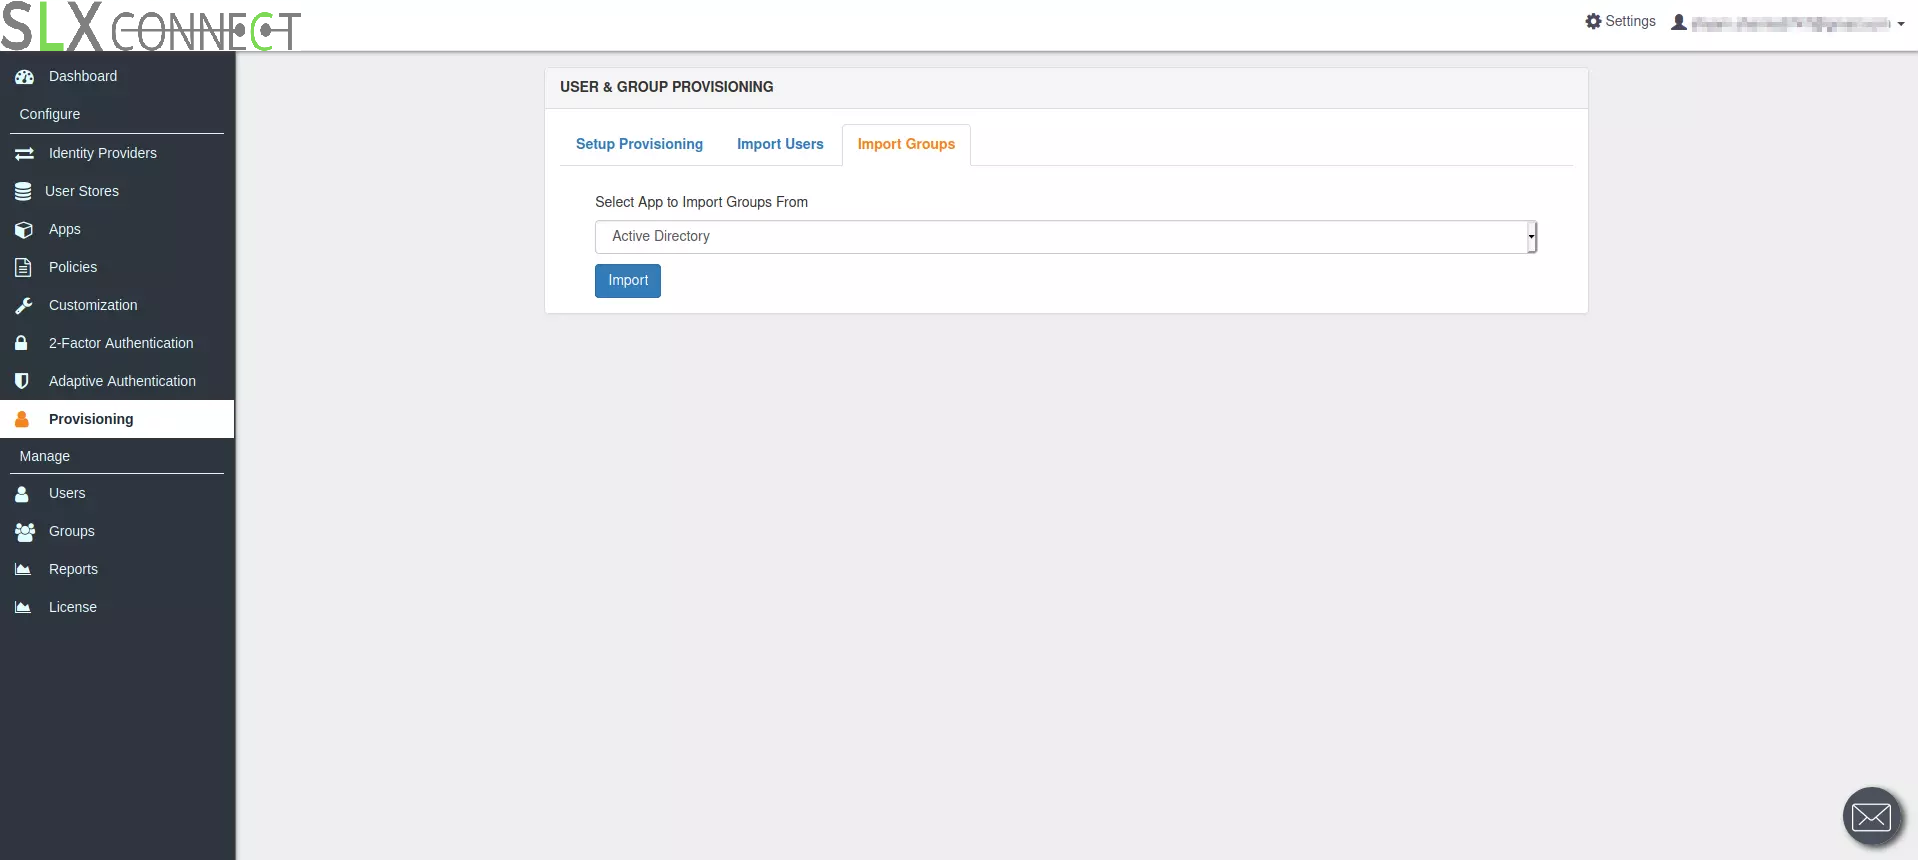 Configure LDAP for AD provisioning